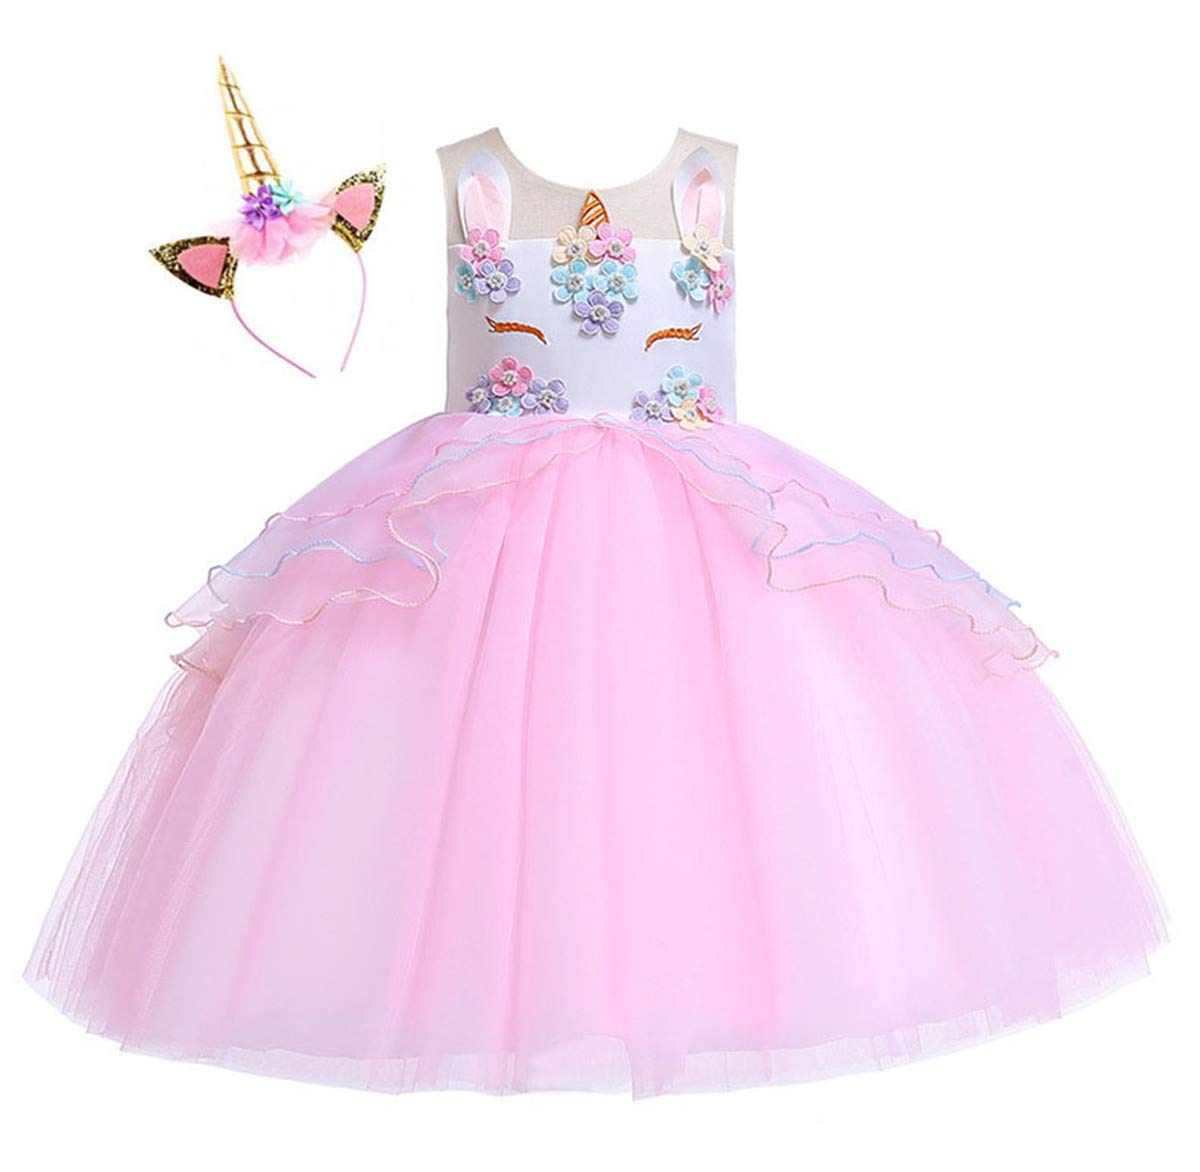 Kokowaii Fancy Girls Unicorn Dress up Fancy Costume for Pageant Party